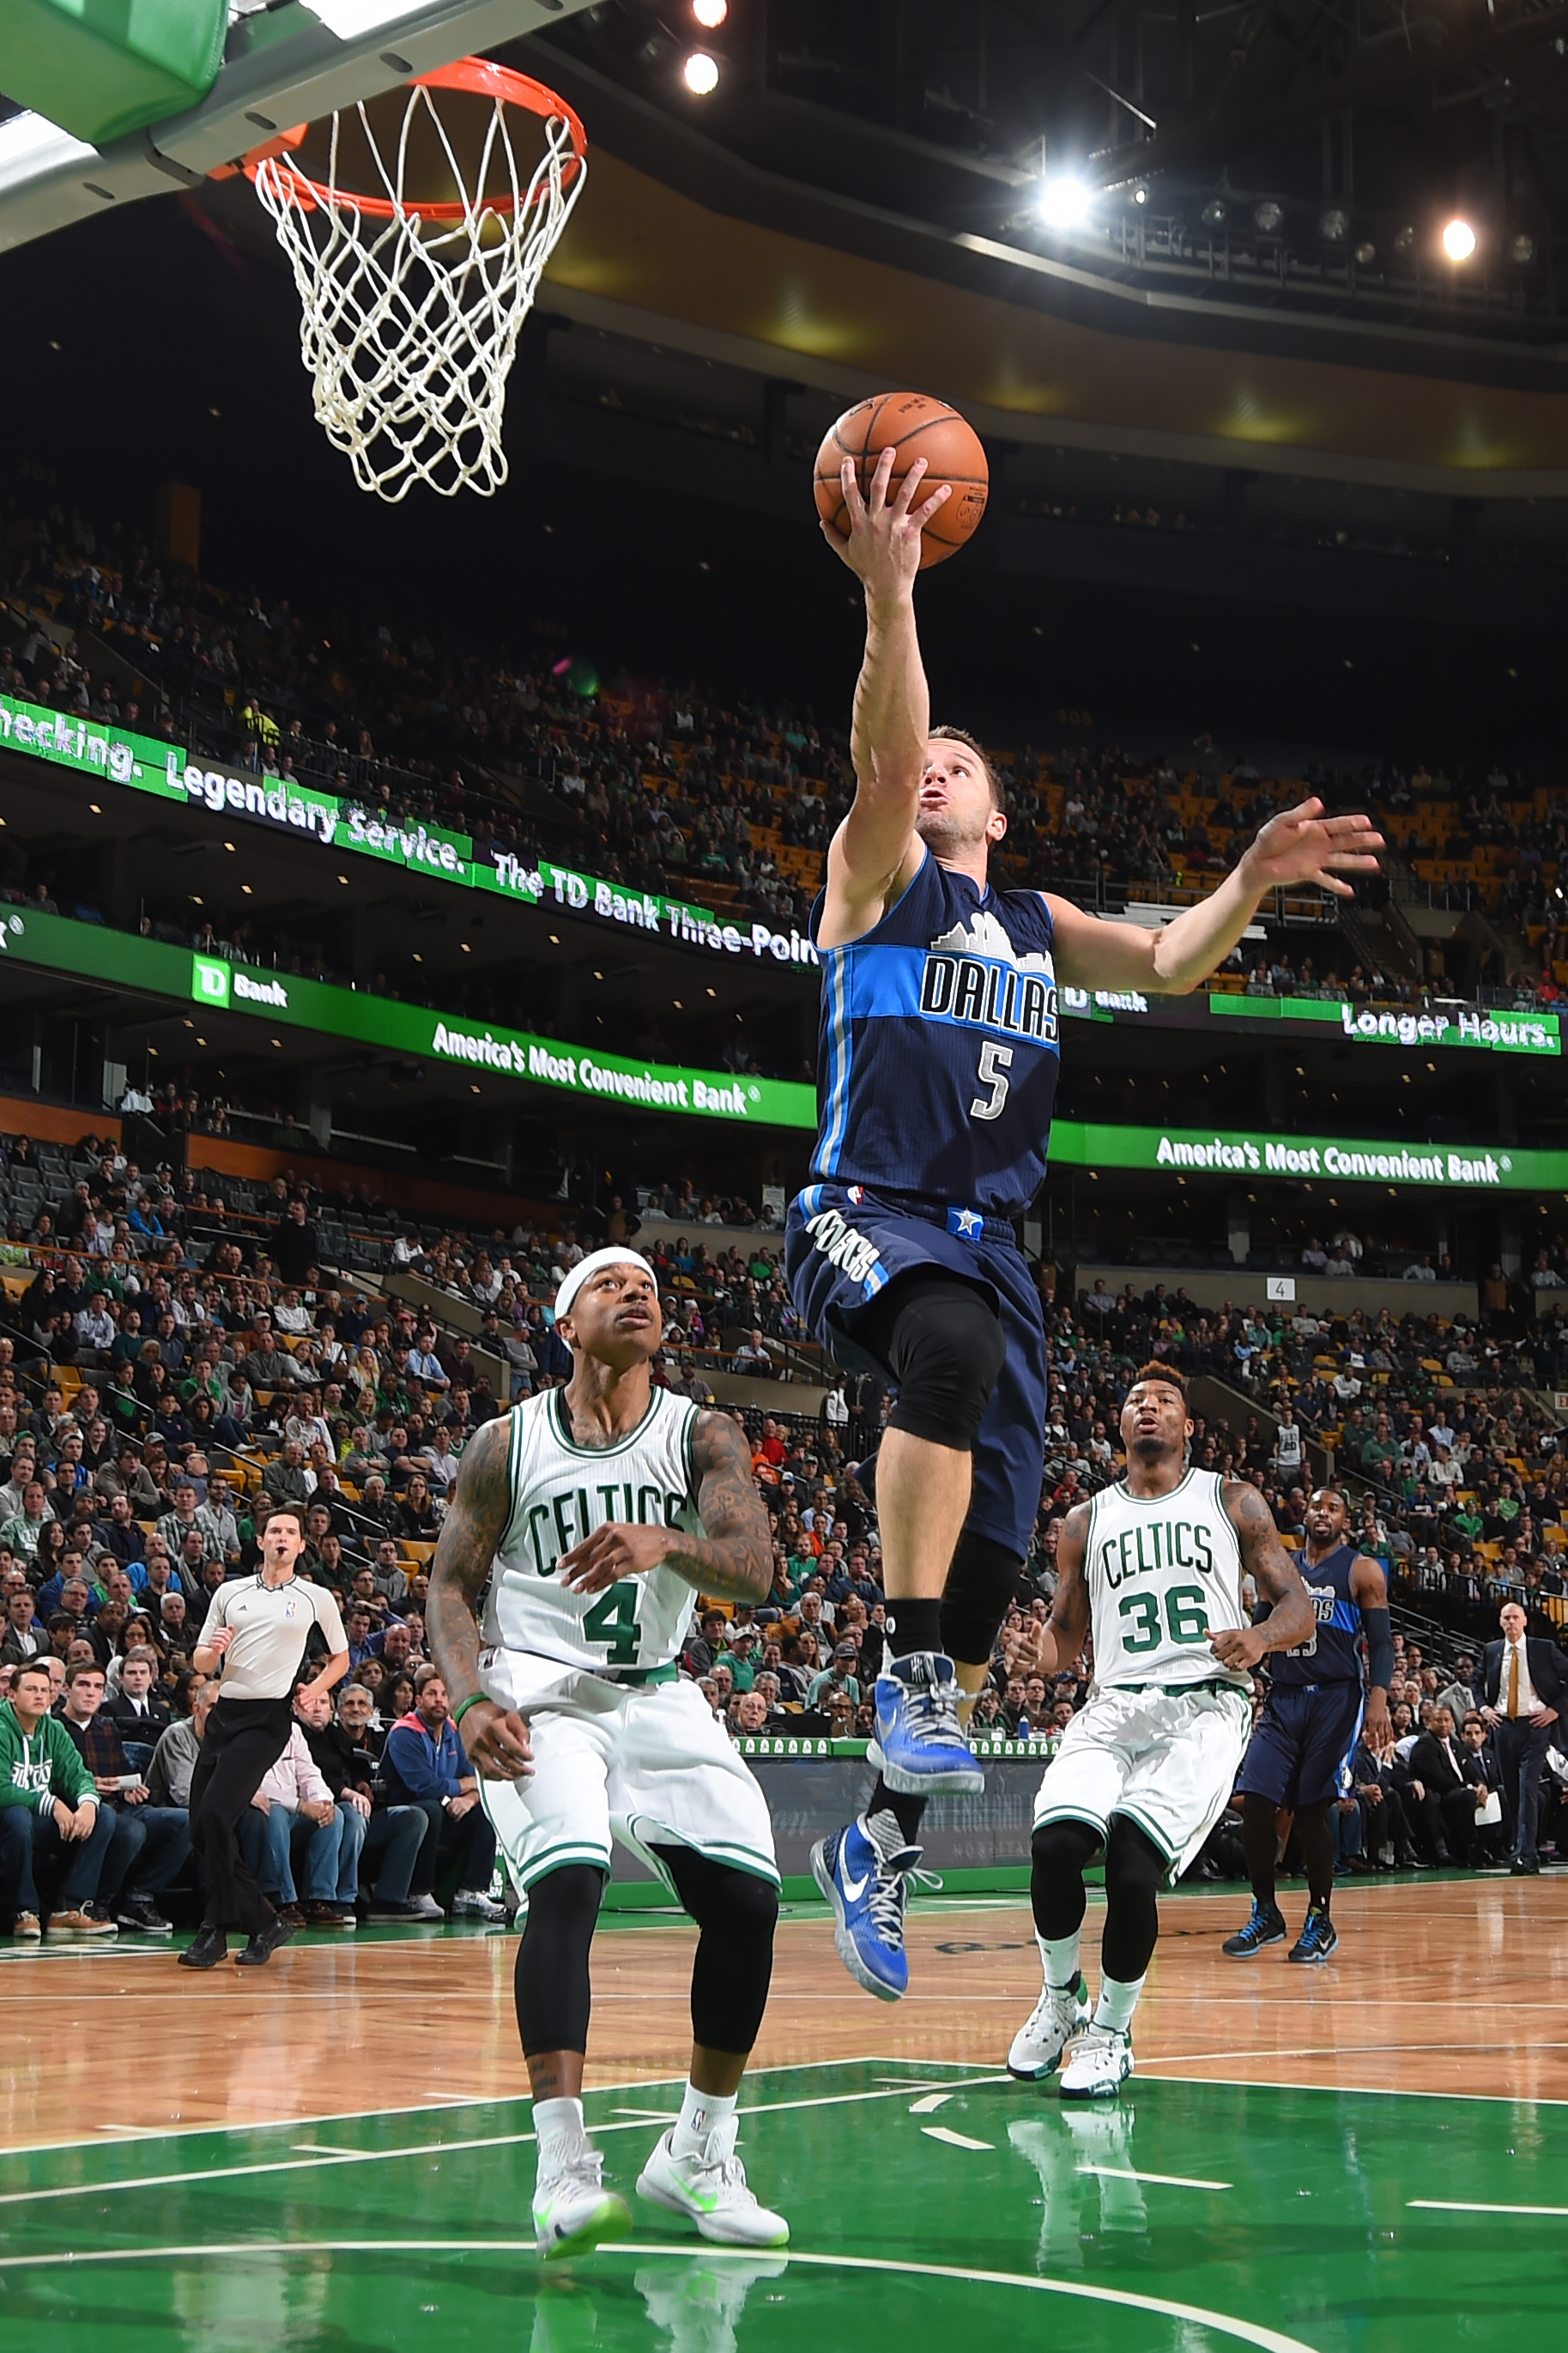 BOSTON, MA - NOVEMBER 18: J.J. Barea #5 of the Dallas Mavericks goes for the lay up against the Boston Celtics during the game on November 18, 2015 at TD Garden in Boston, Massachusetts. (Photo by Brian Babineau/NBAE via Getty Images)